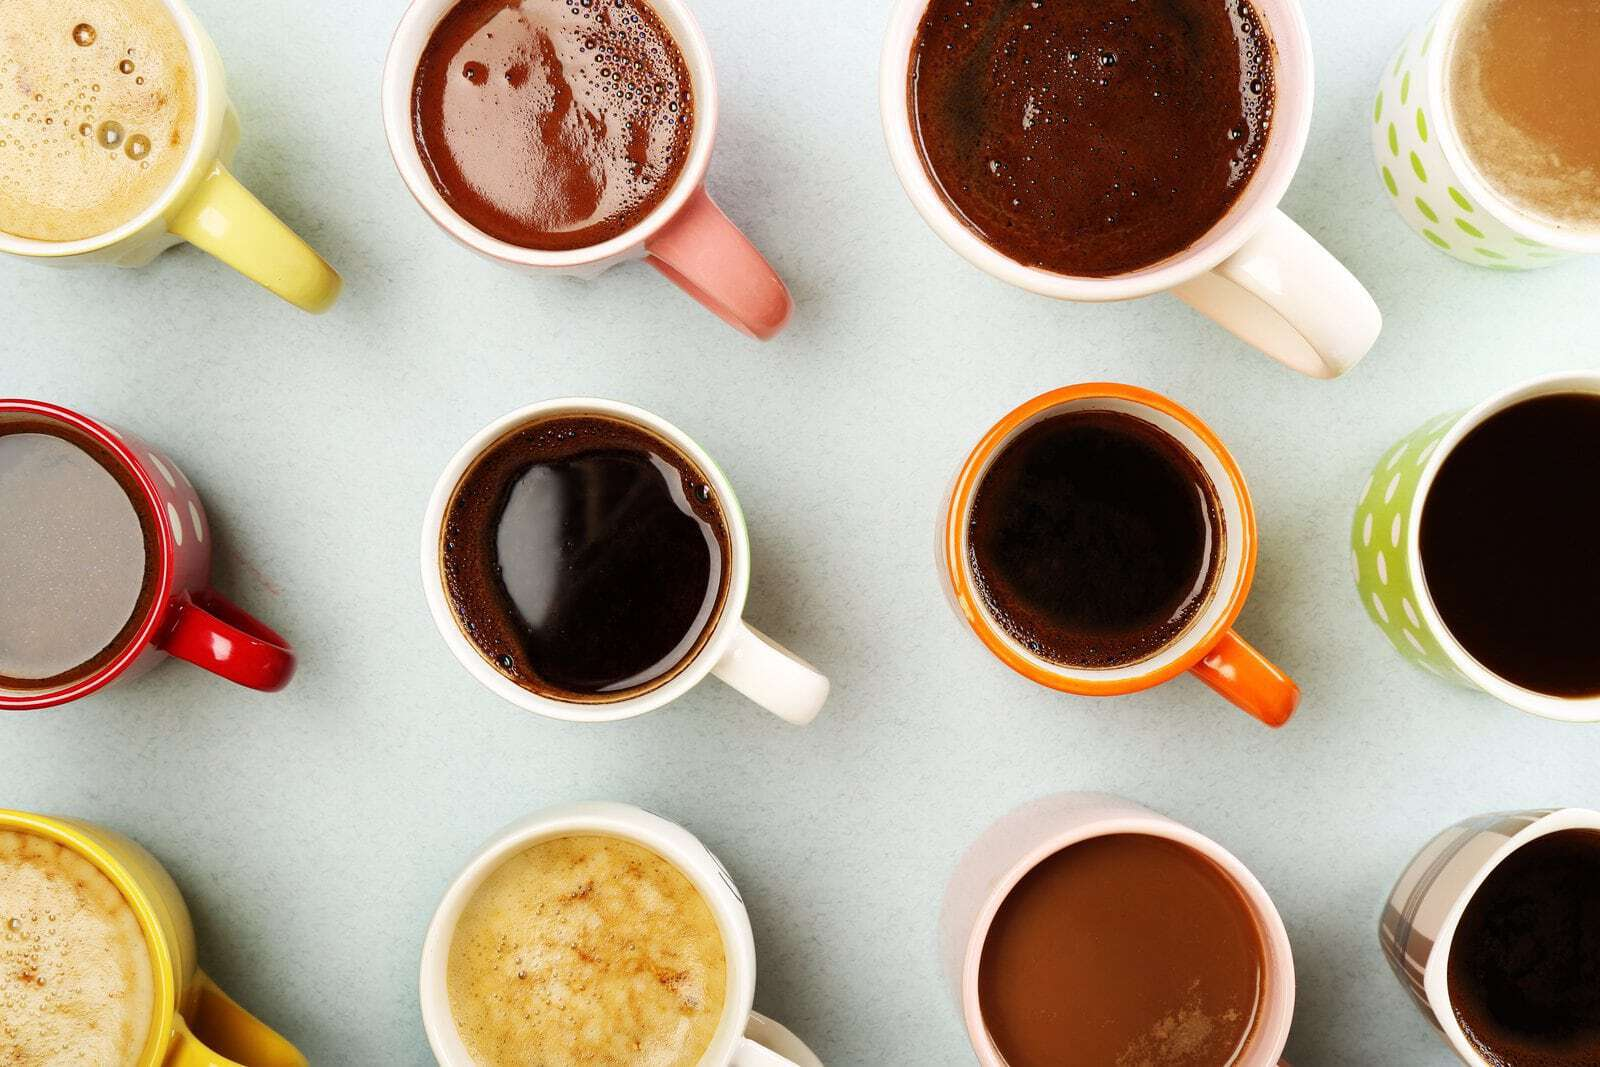 Many cups of coffee on table, top view